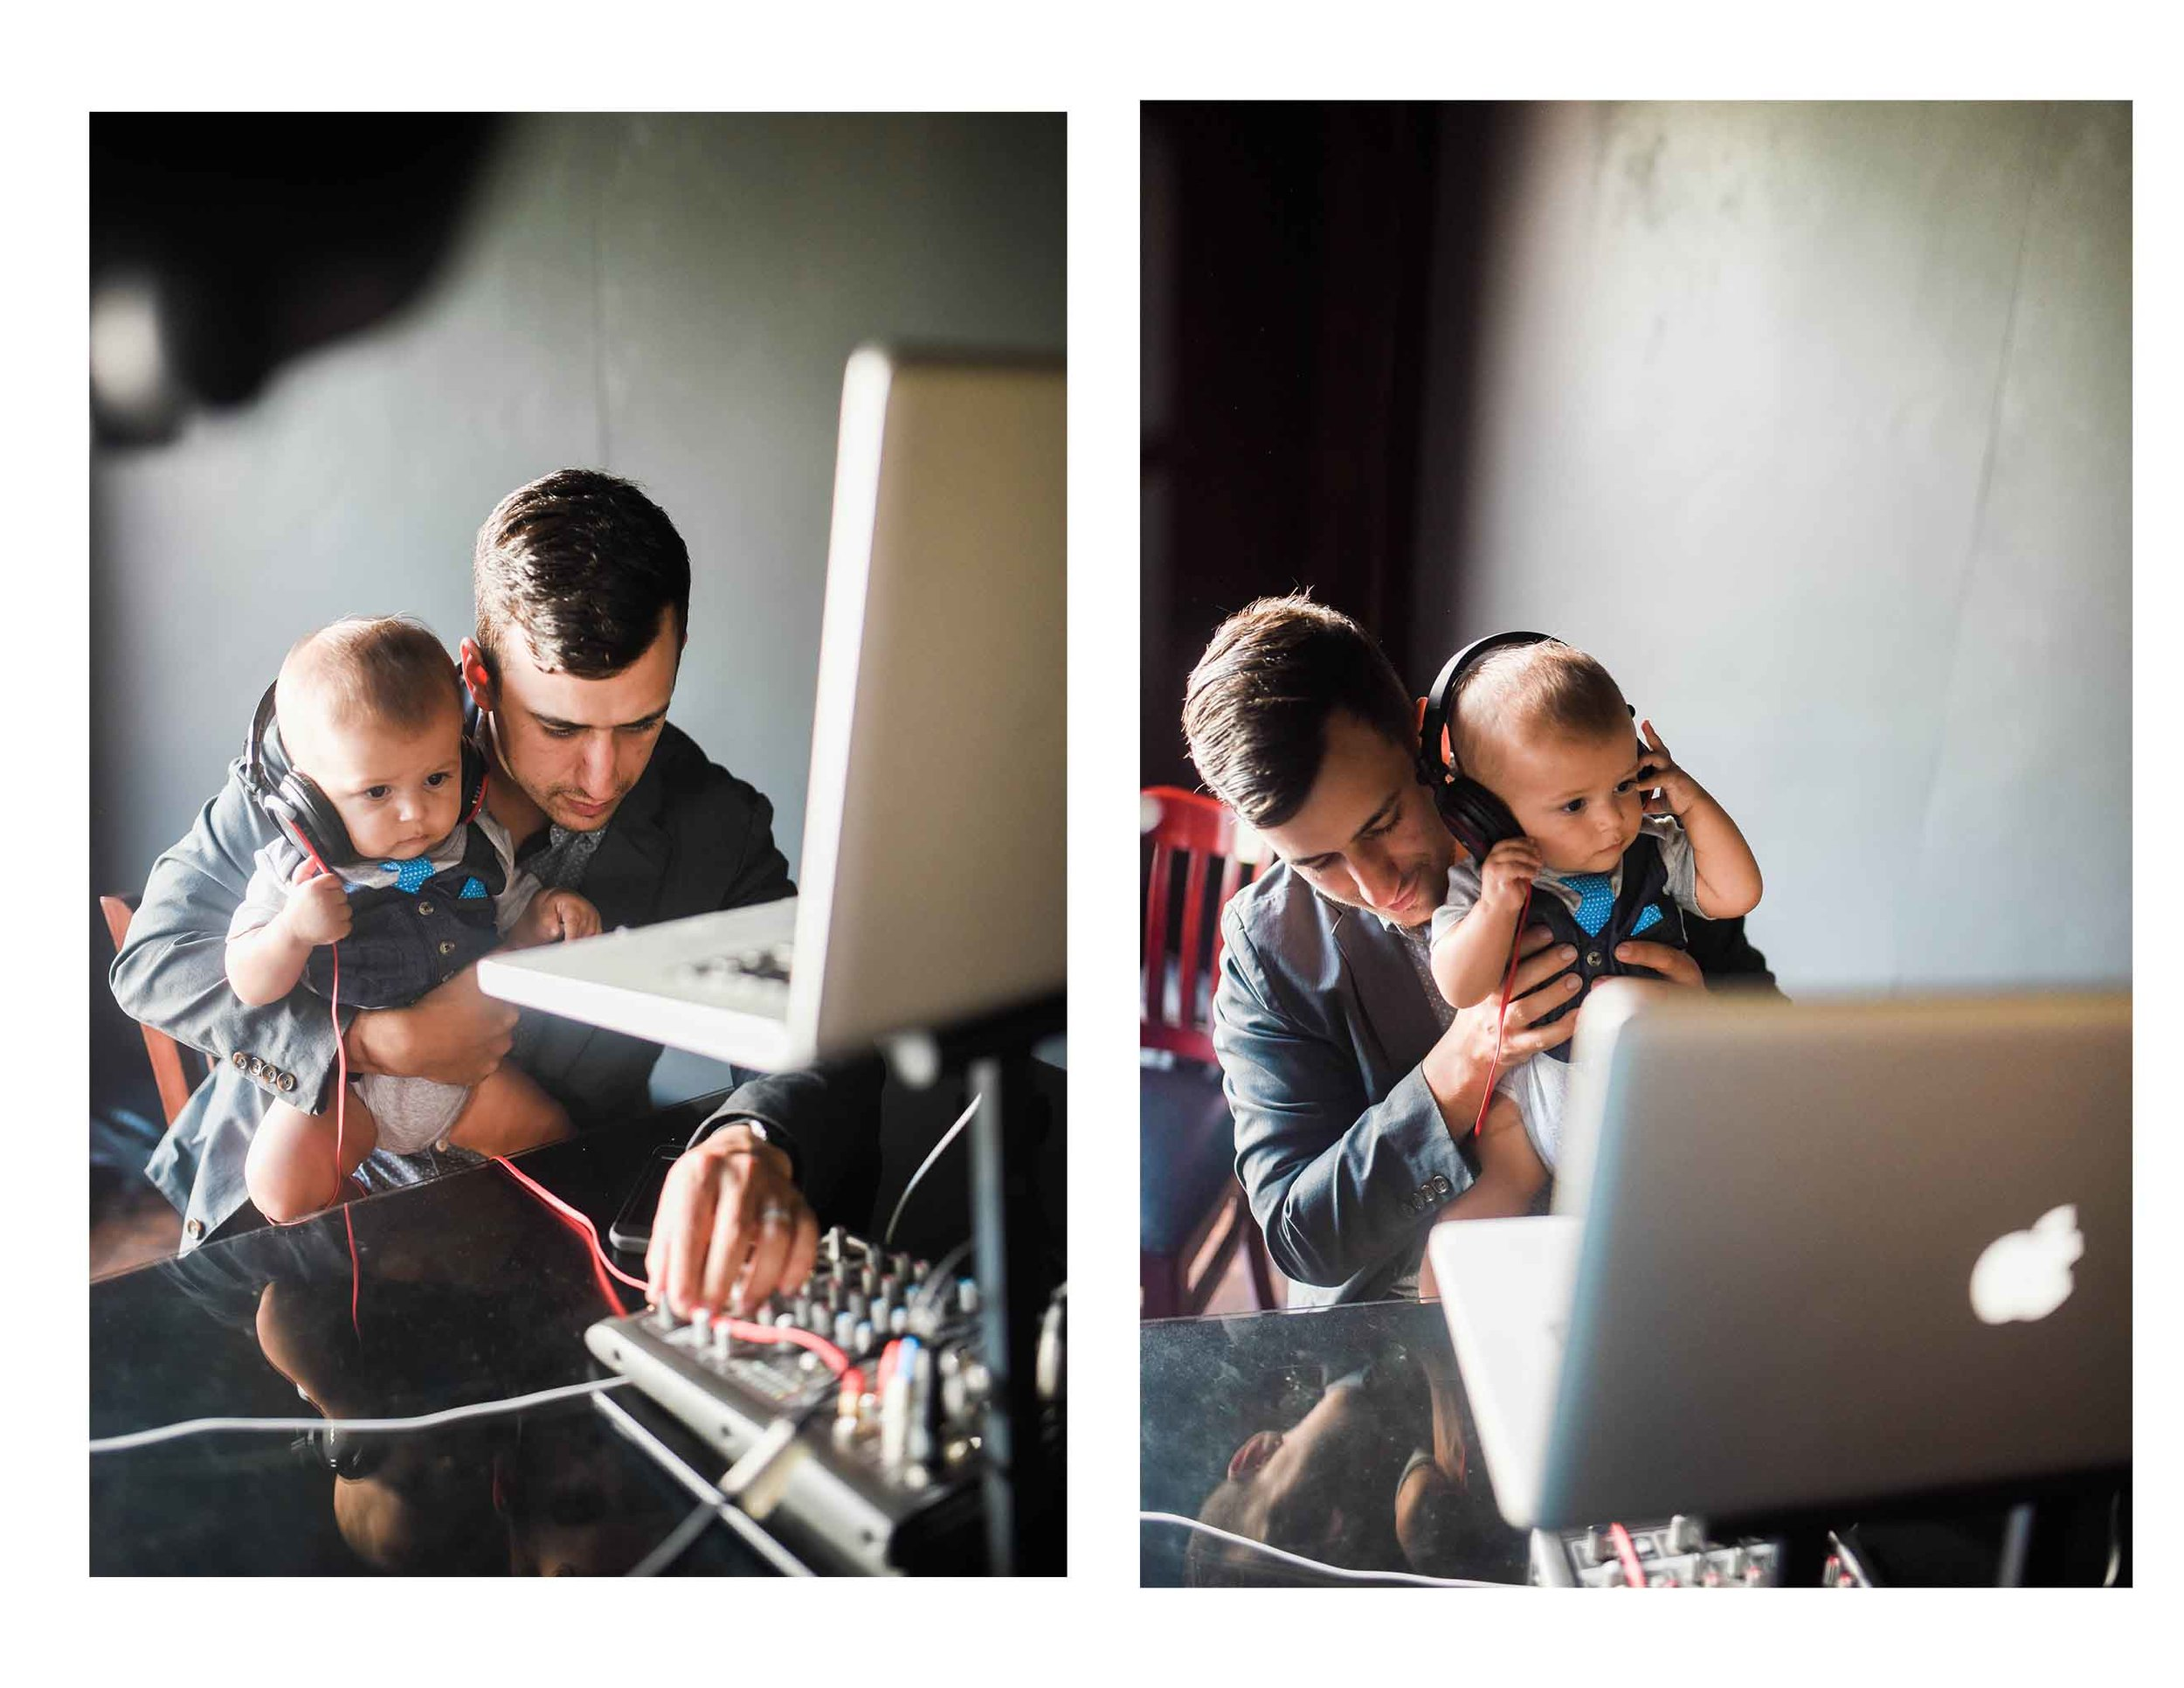 World's cutest DJ and world's cutest baby!